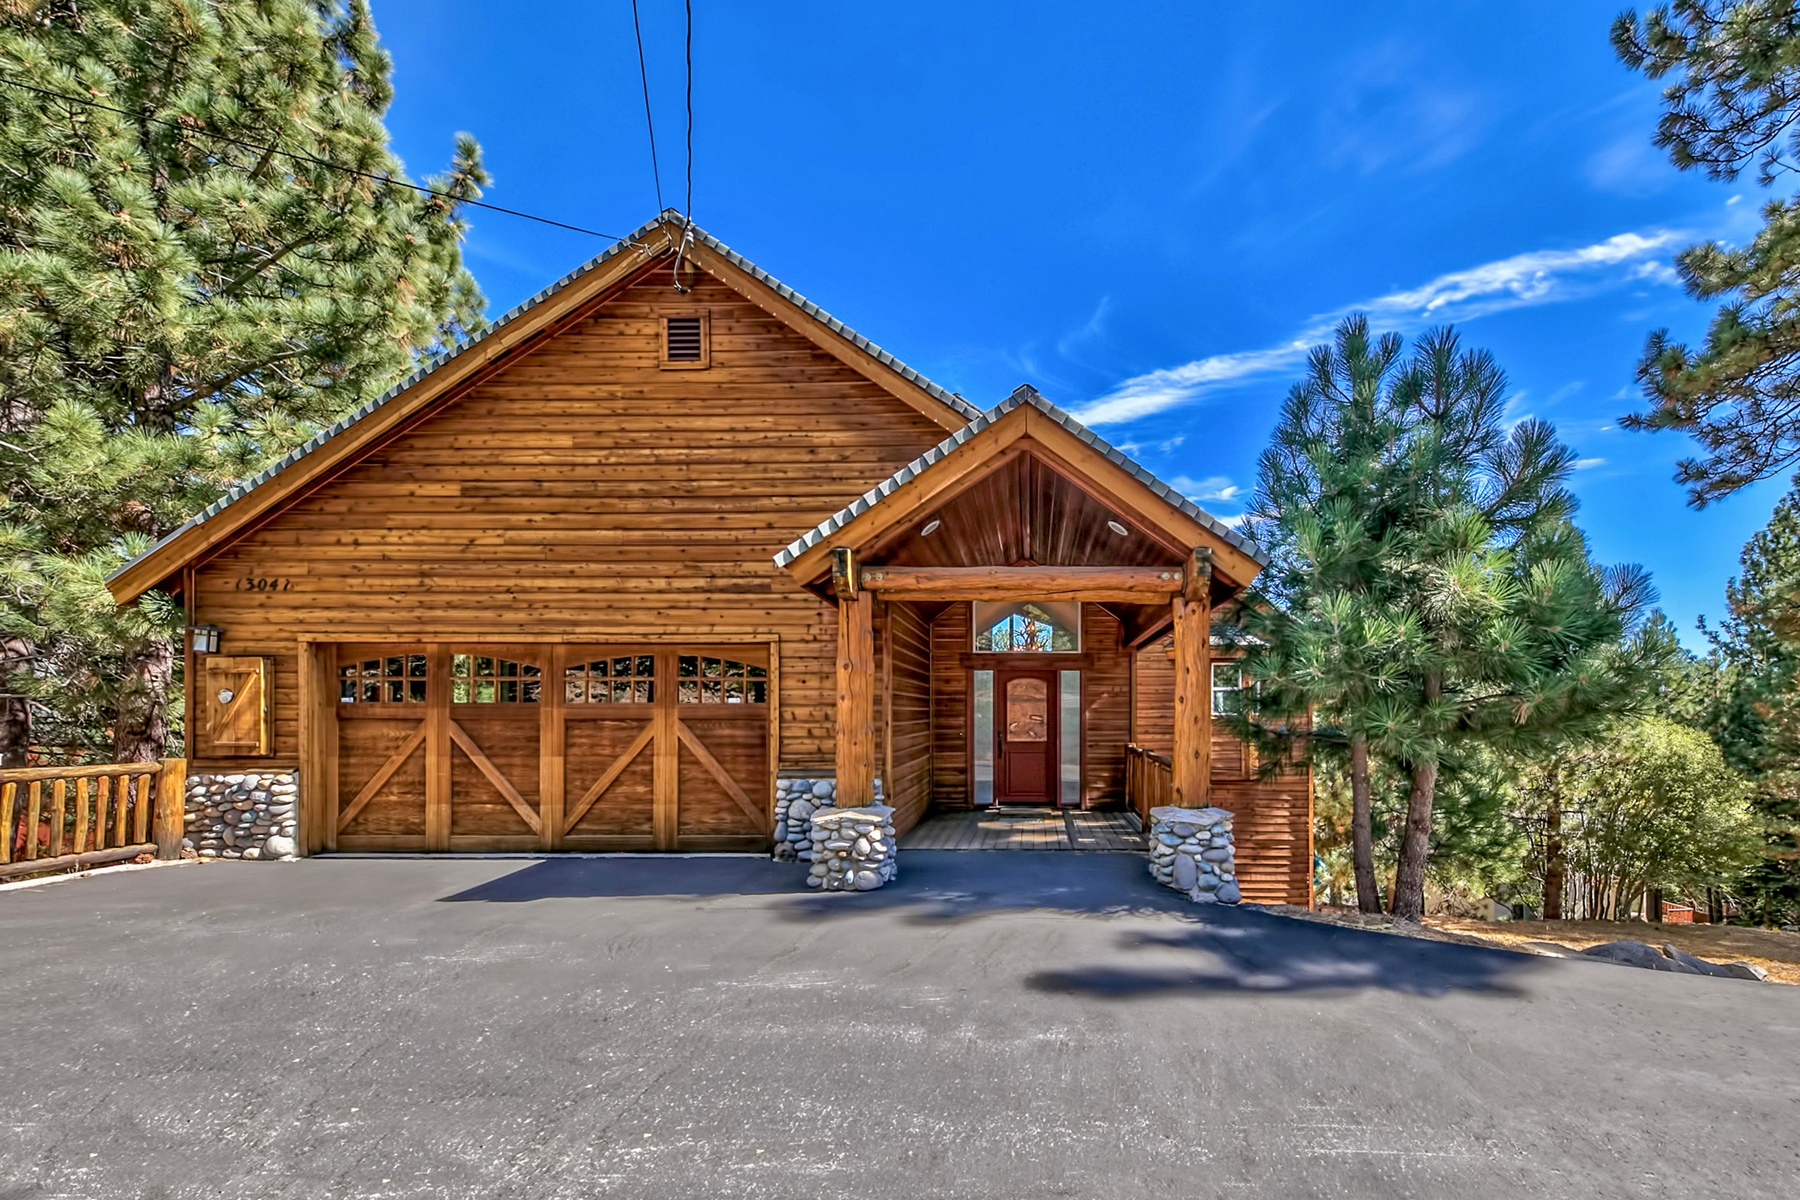 Property for Active at 13041 Stockholm Way, Truckee, CA 13041 Stockholm Way Truckee, California 96161 United States